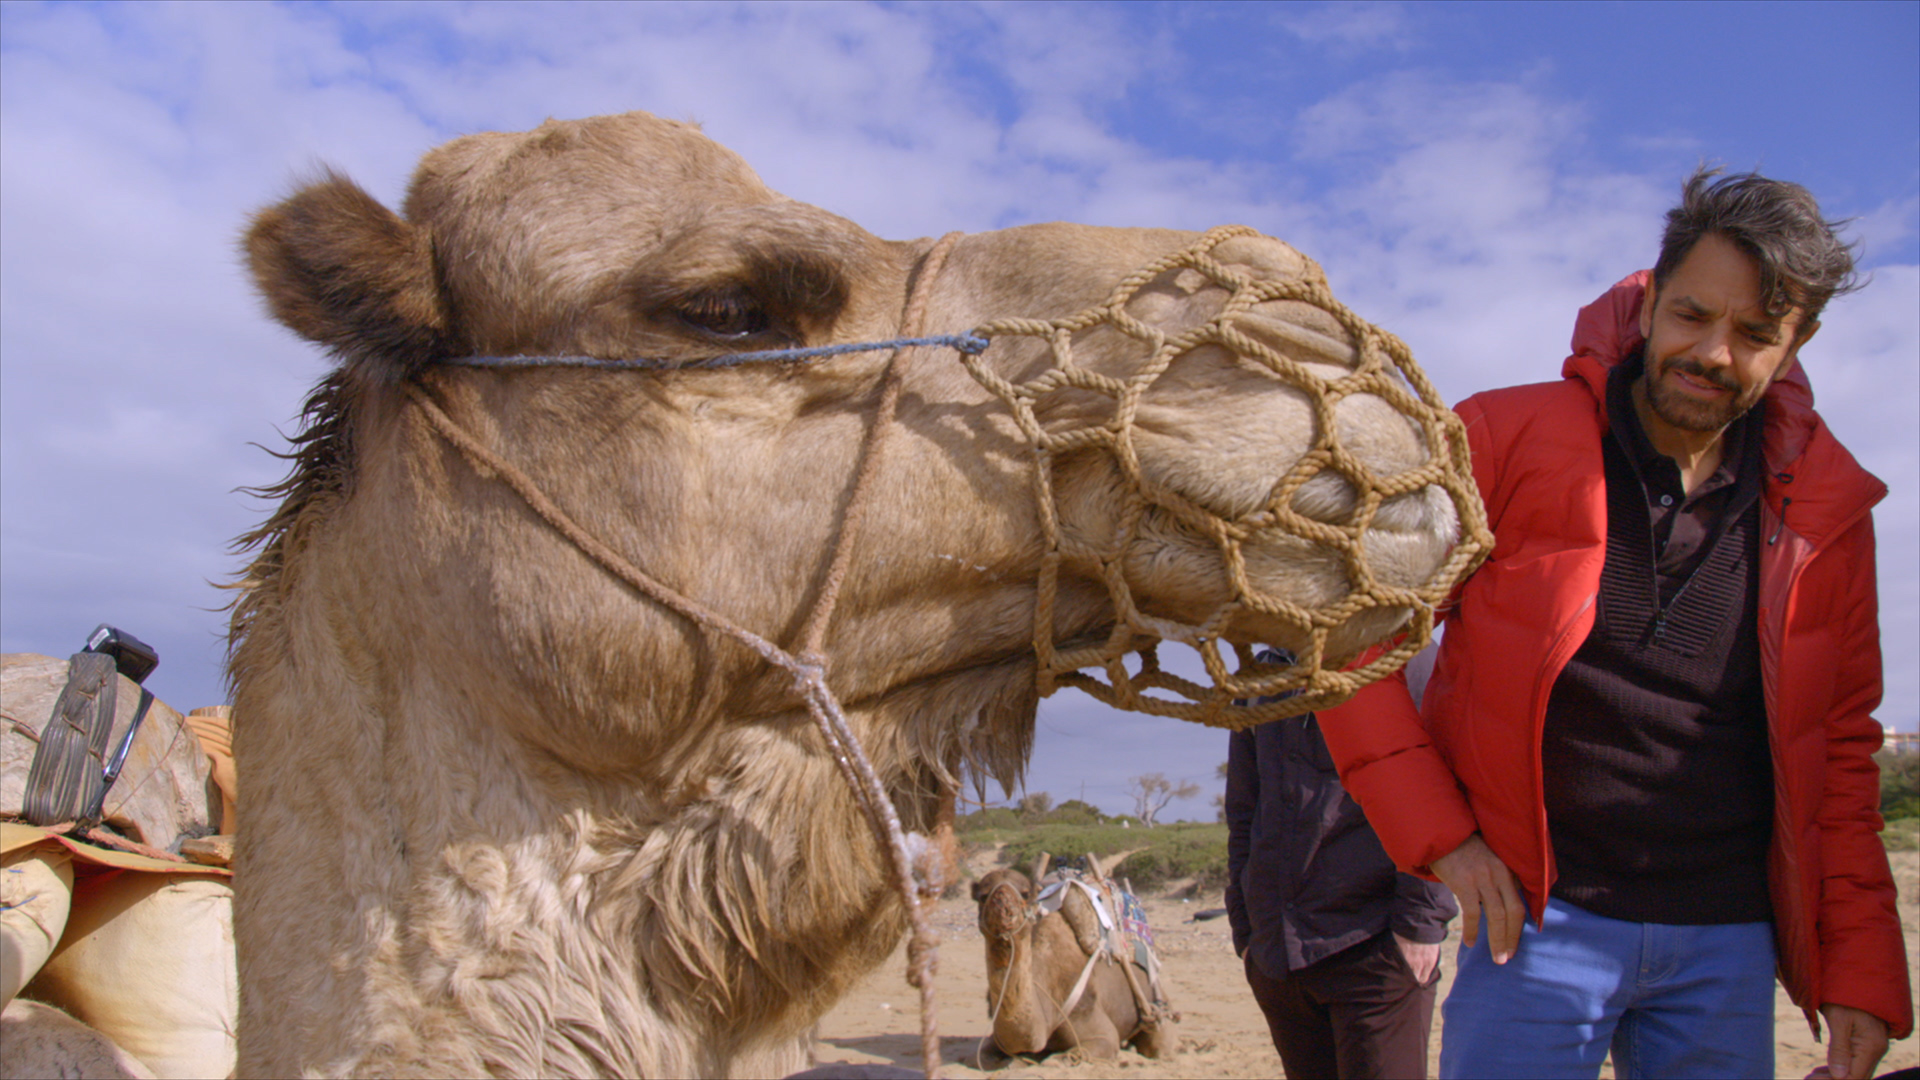 TRAILER: Eugenio Derbez & His Famous Family Head to Morocco in New Reality Show